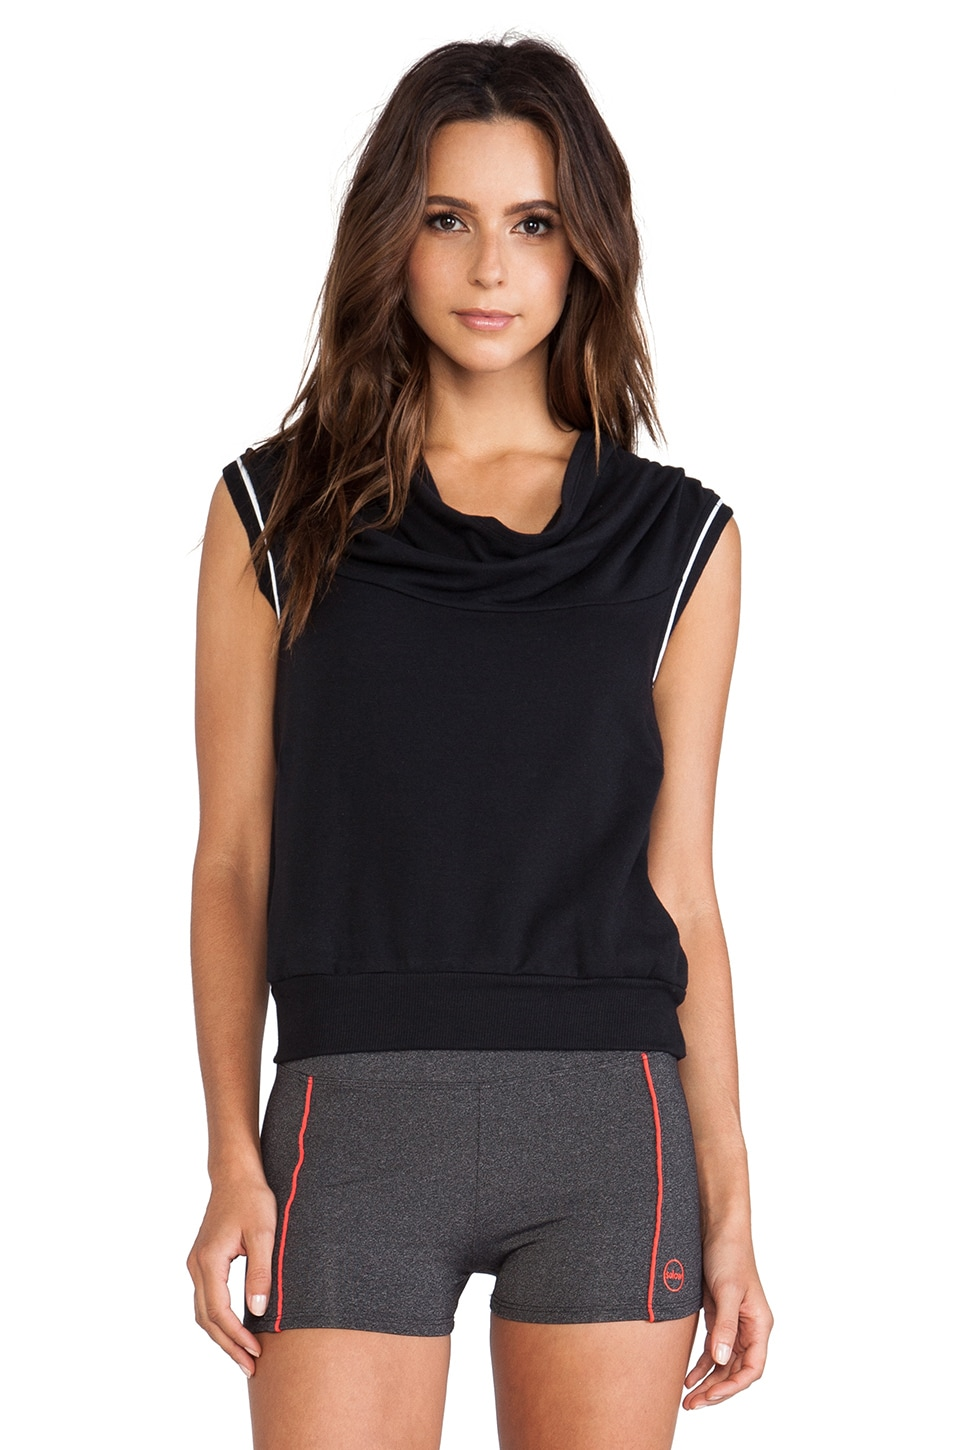 SOLOW So Low Sleeveless Draped Hoodie in Black & White